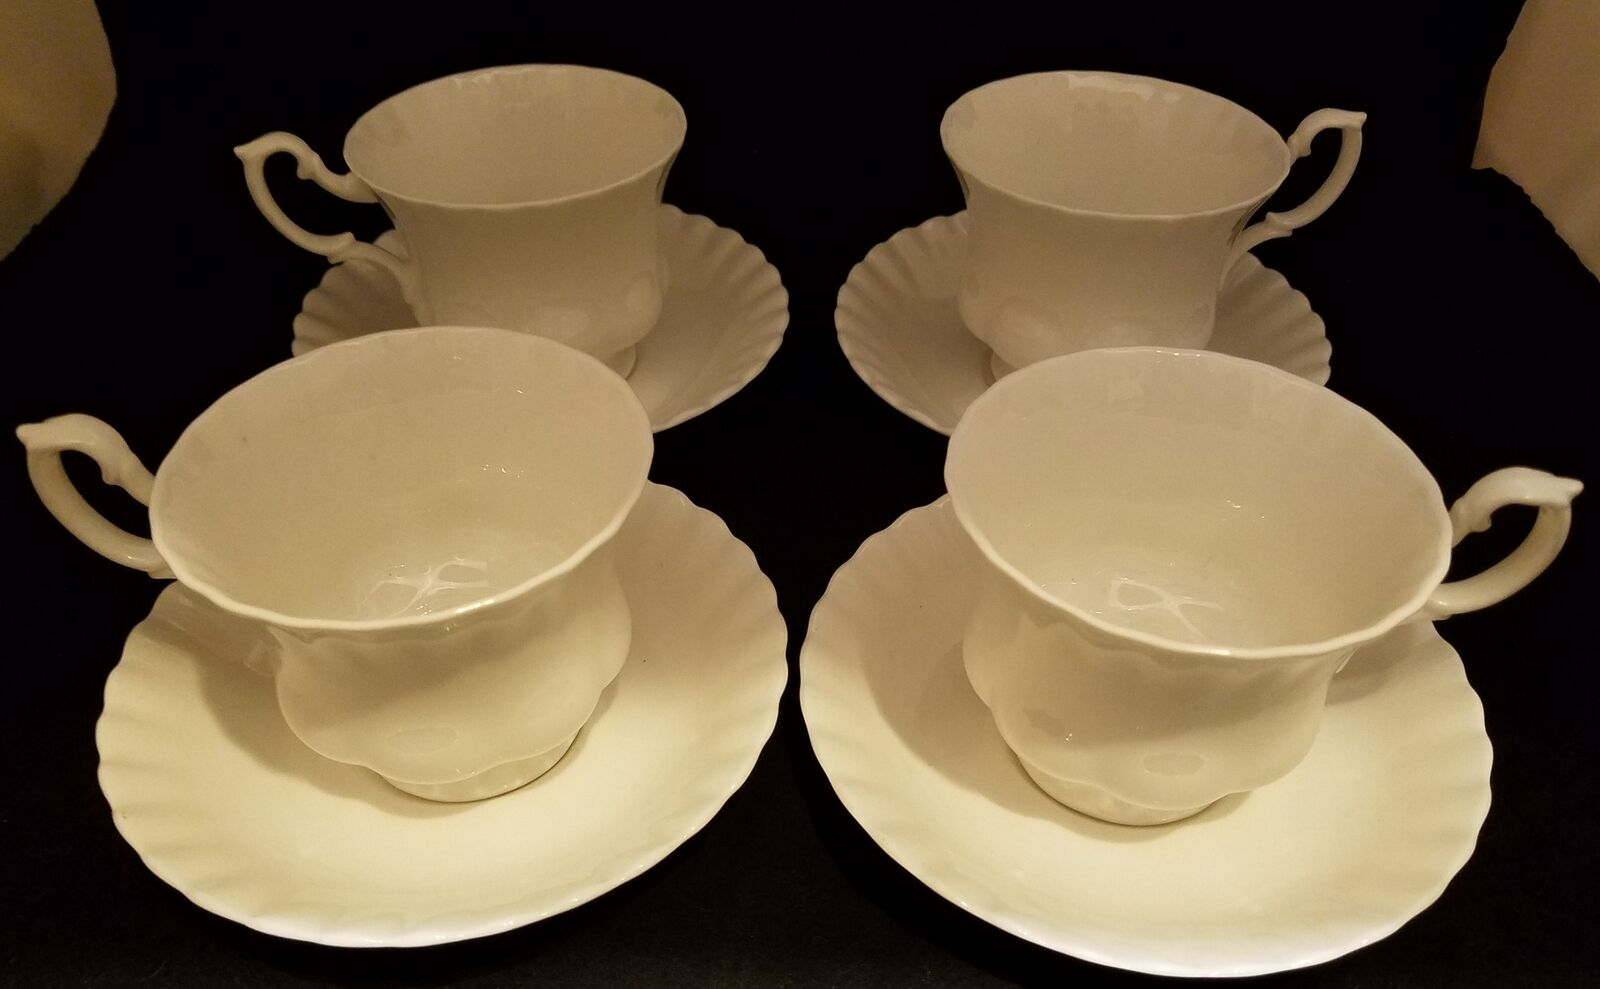 Beautiful Royal Albert Reverie 4 Cups & Saucers - FREE SHIPPING